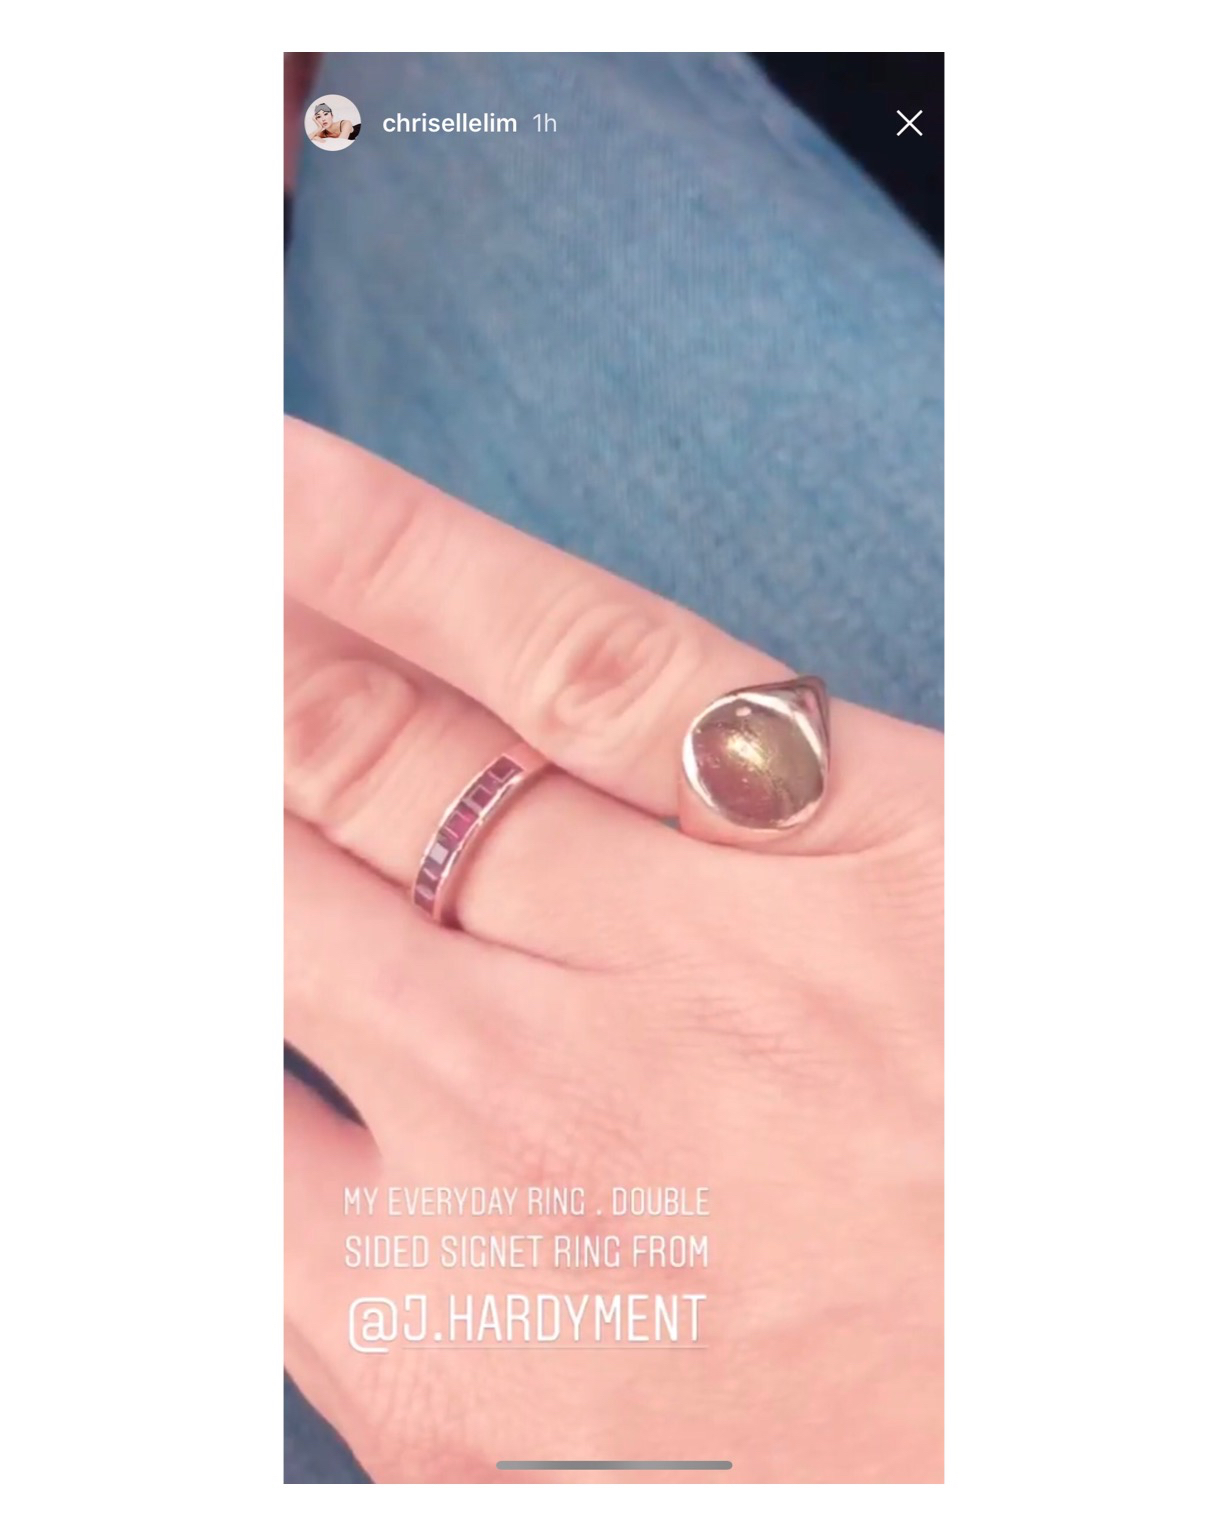 Chriselle Lim wearing her 2 Face Pinky Ring